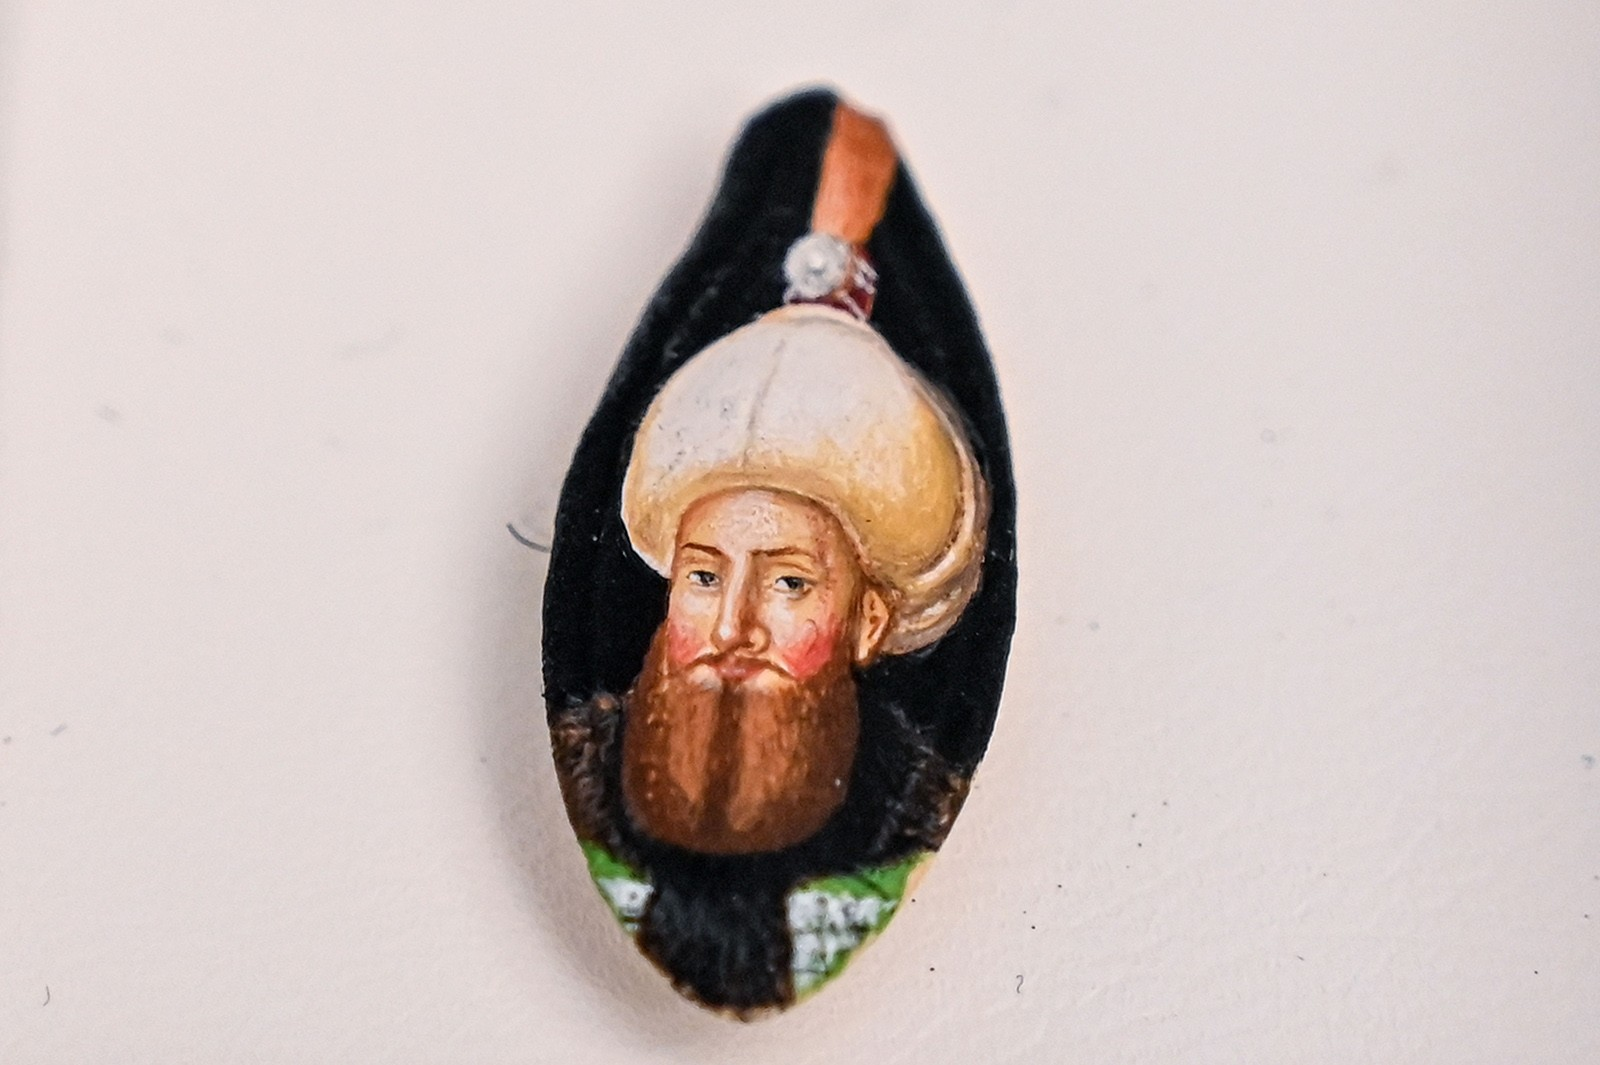 Turkey's 'Microangelo' turns tiny objects into little capsules of art